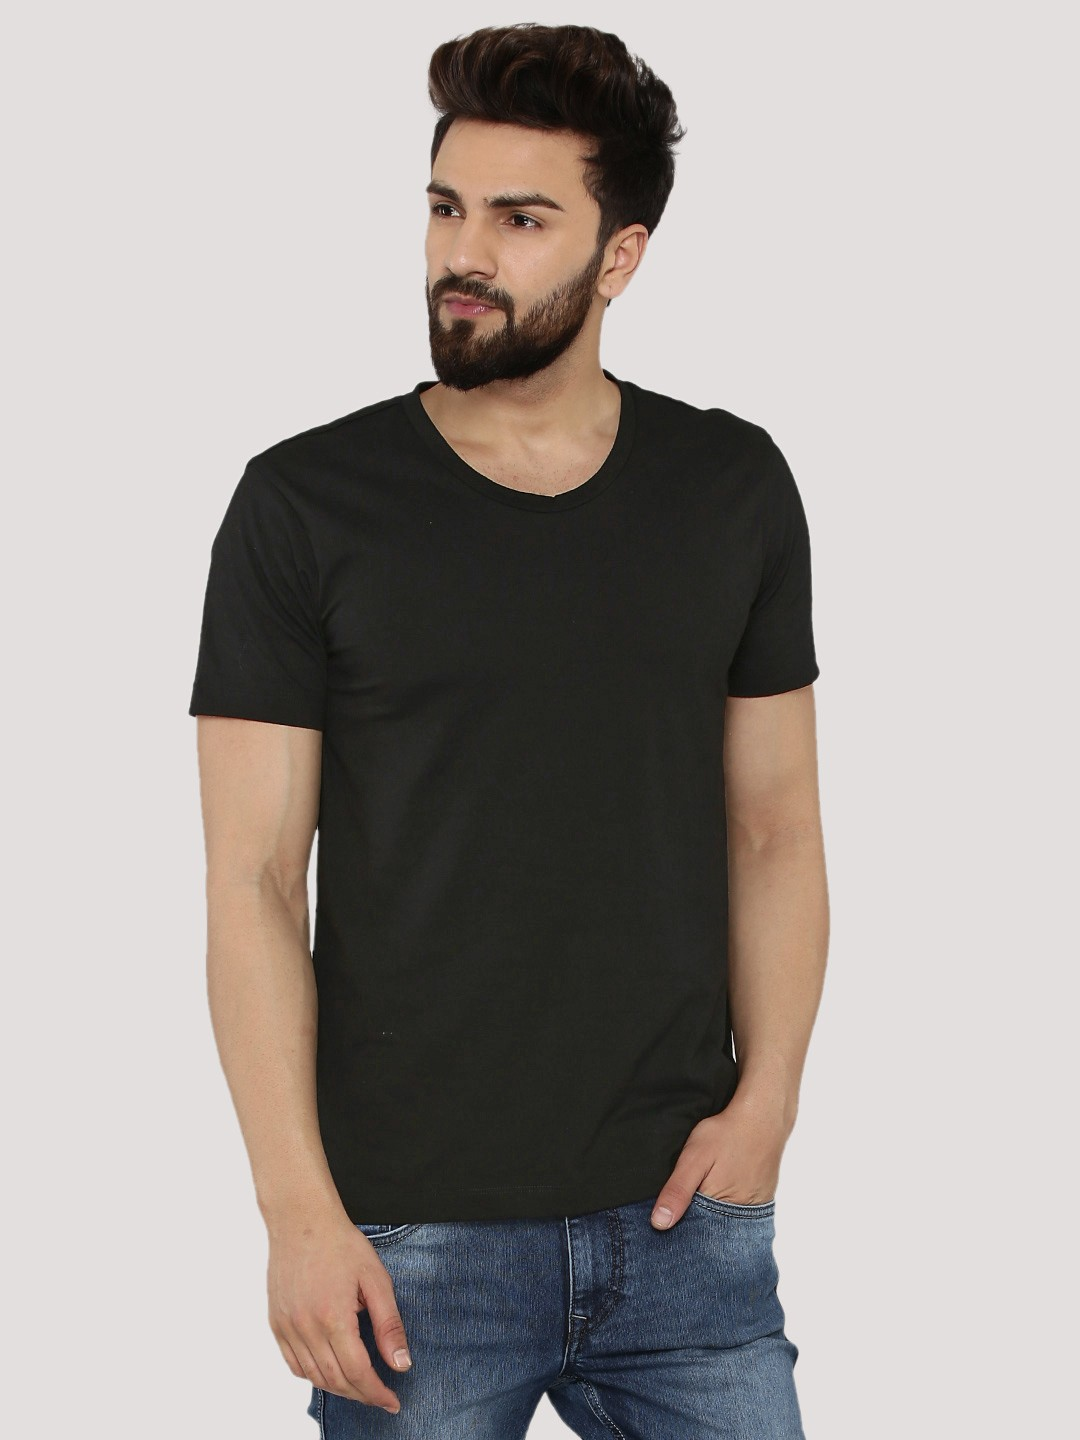 Black t shirt man - Koovs Scoop Neck T Shirt